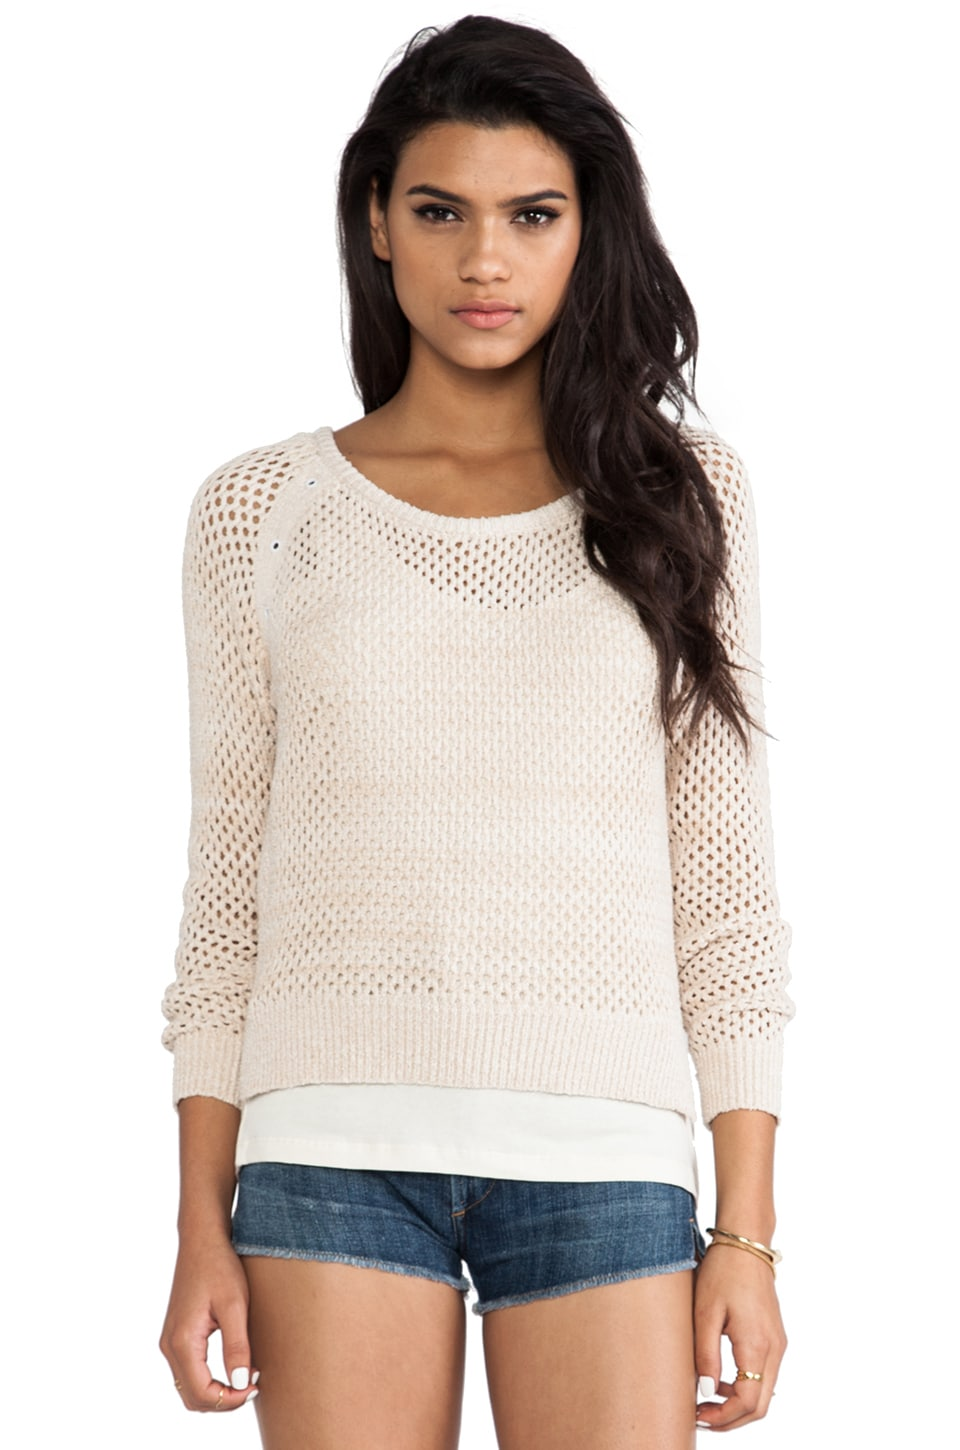 Maison Scotch 2-1 Sweater and Tank in Cream